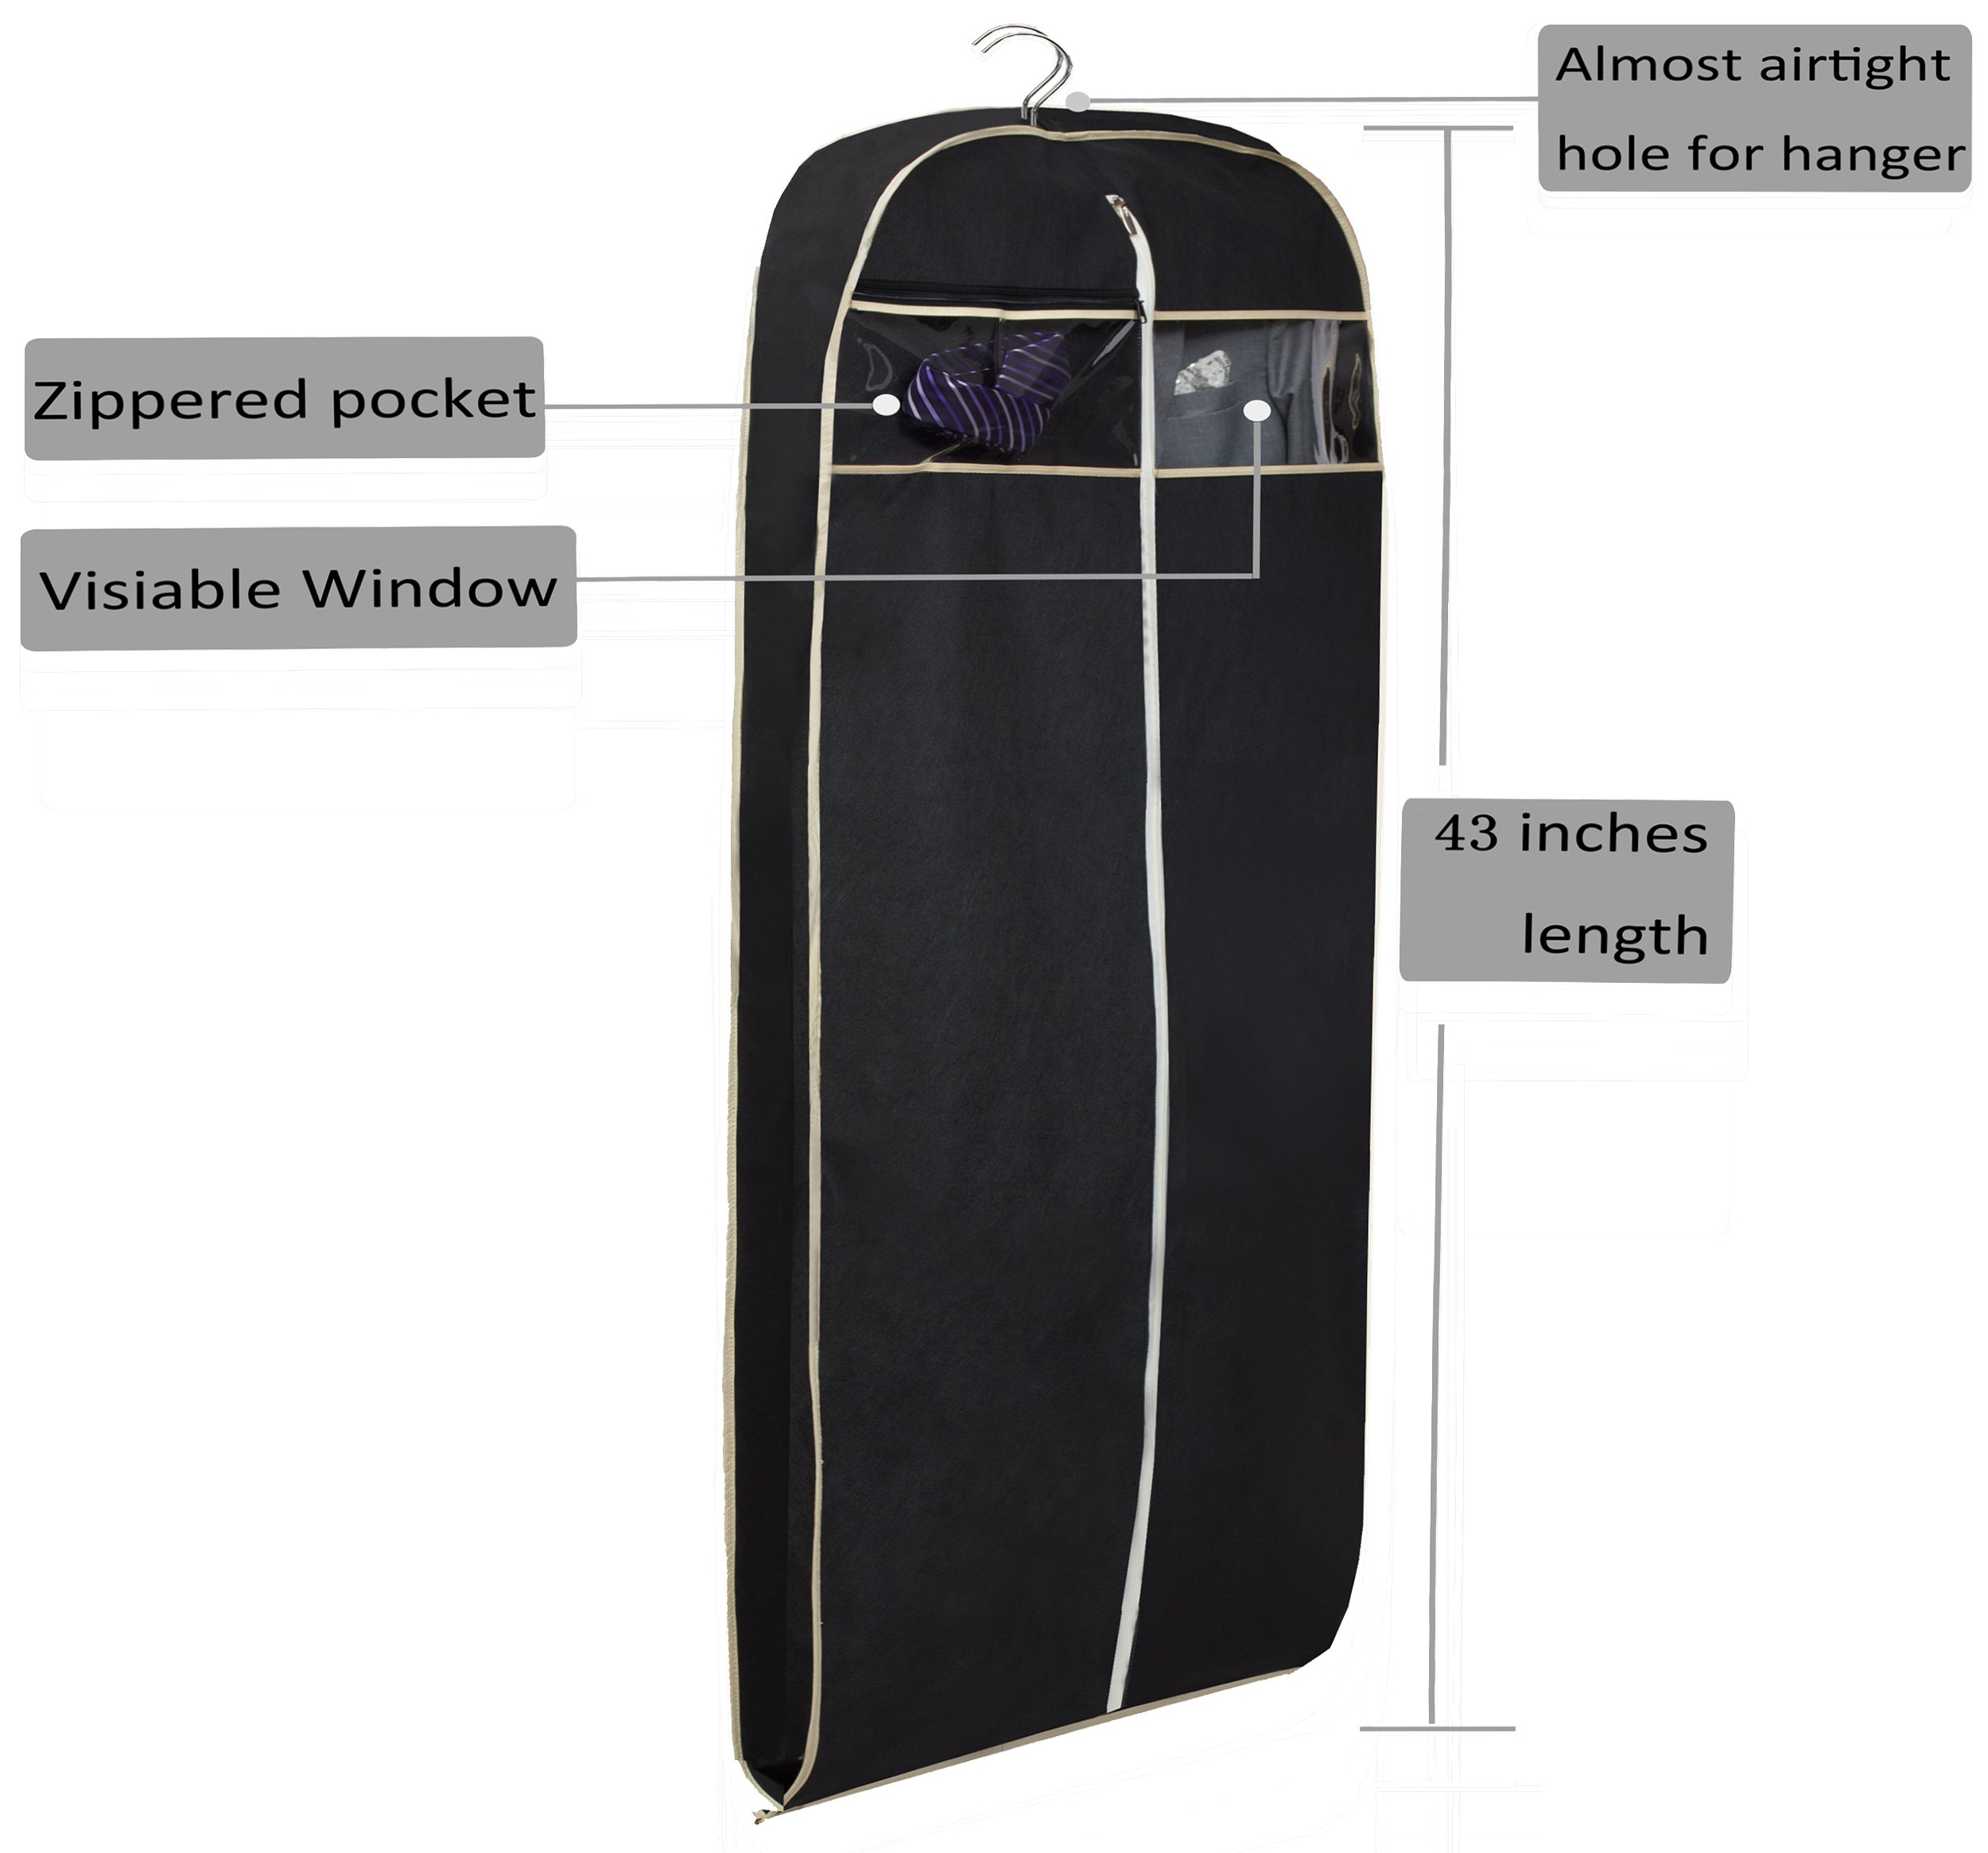 MISSLO 43'' Gusseted Travel Garment Bag with Accessories Zipper Pocket Breathable Suit Garment Cover for Shirts Dresses Coats, Black by MISSLO (Image #6)